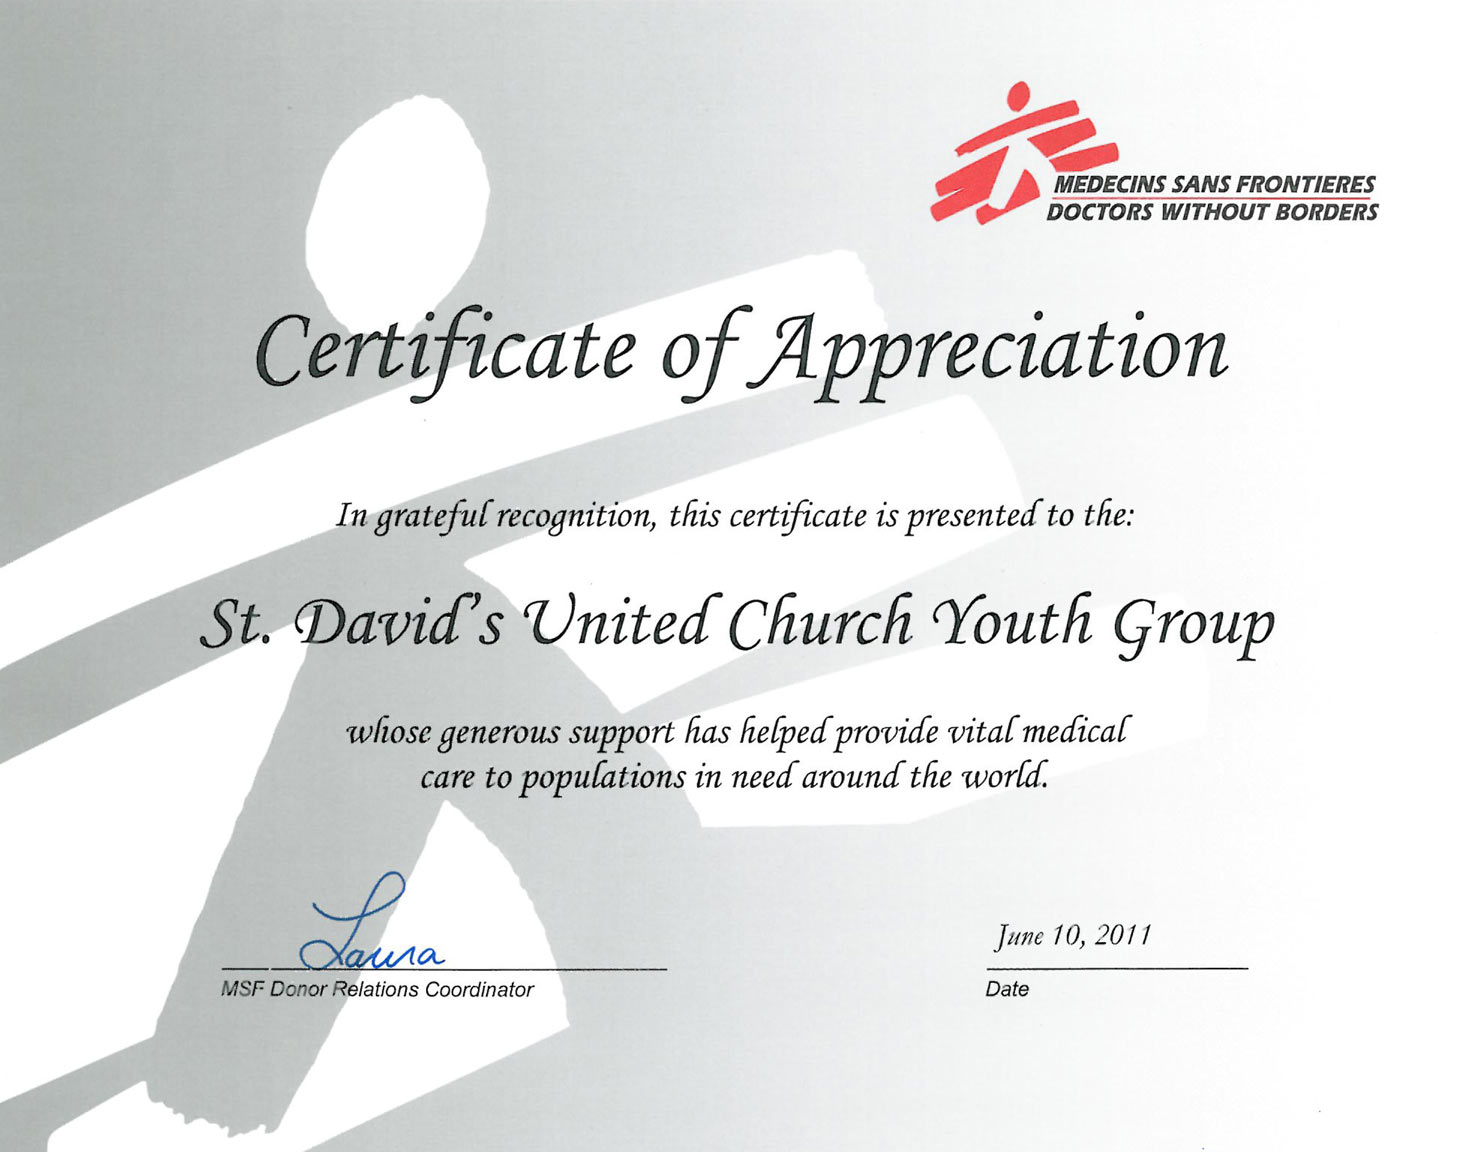 msf thank youth certificate fundraising sans thanking sduc